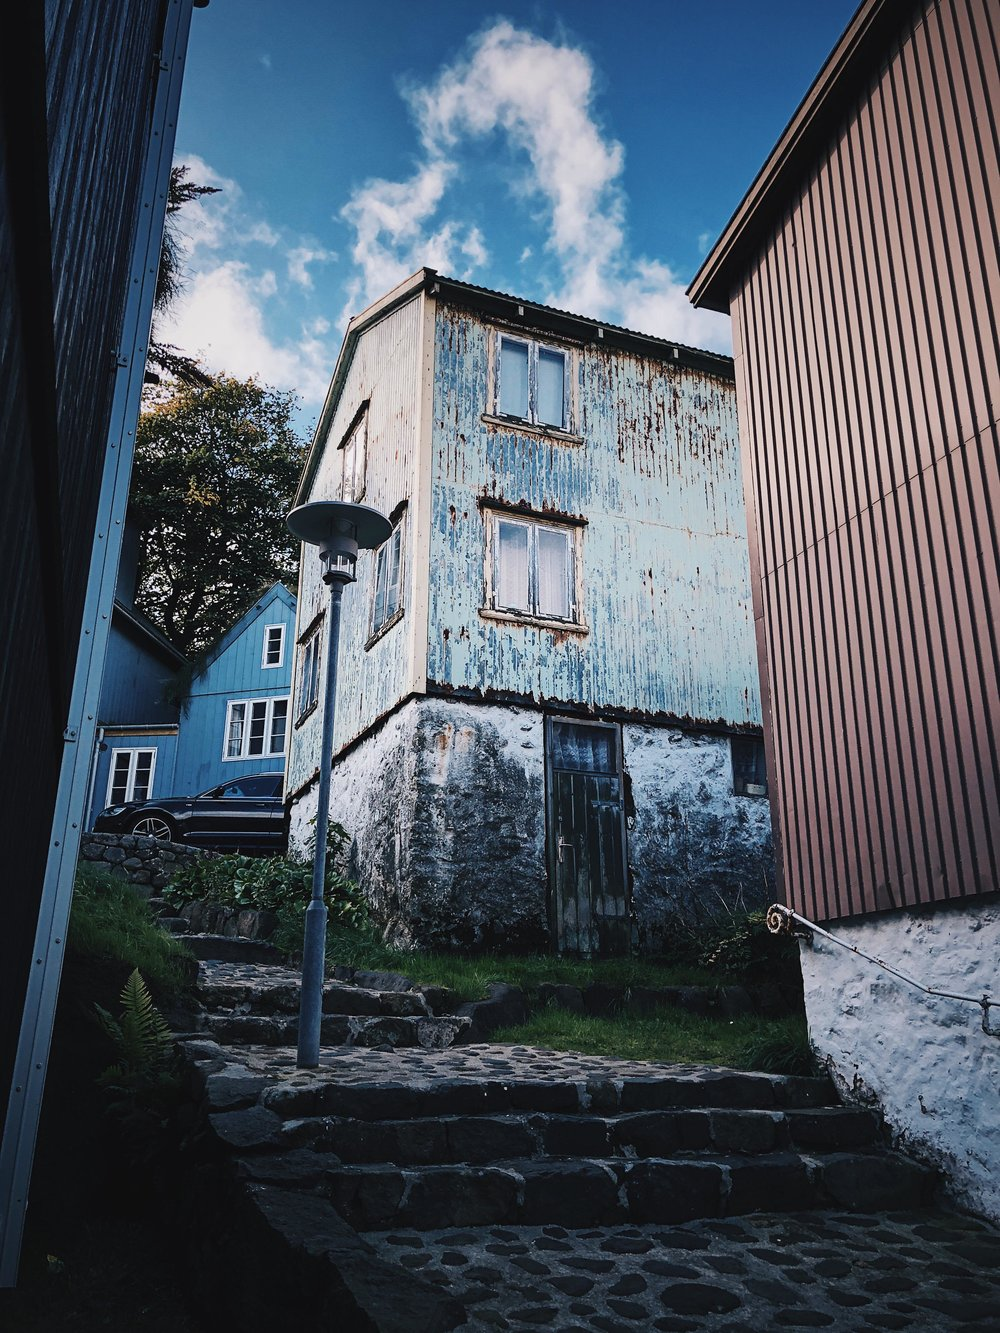 Typical street scene in Tórshavn